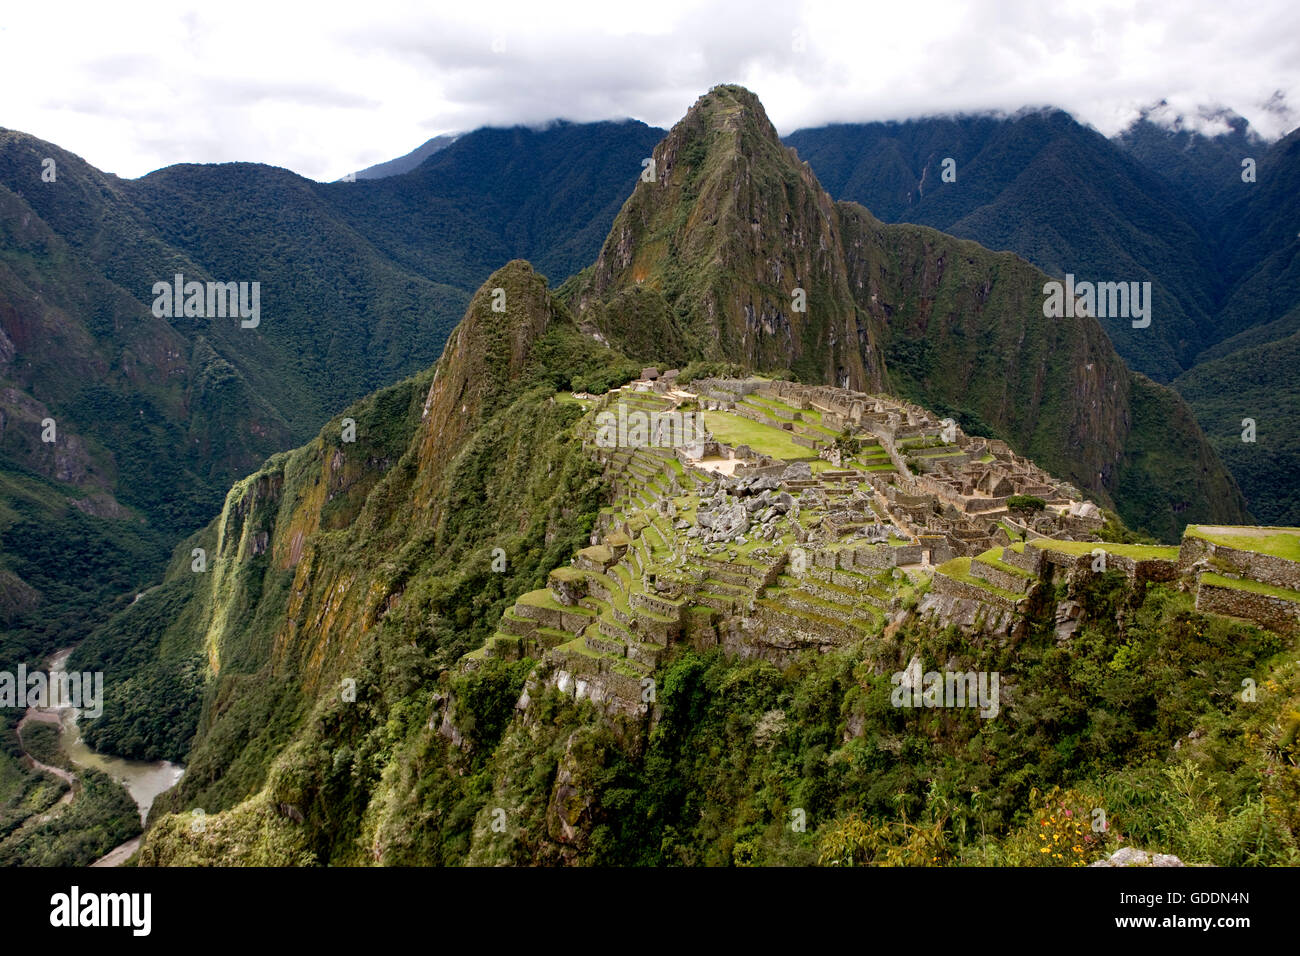 Machu Picchu, The Lost City of the Incas, Andean Cordillera in Peru - Stock Image